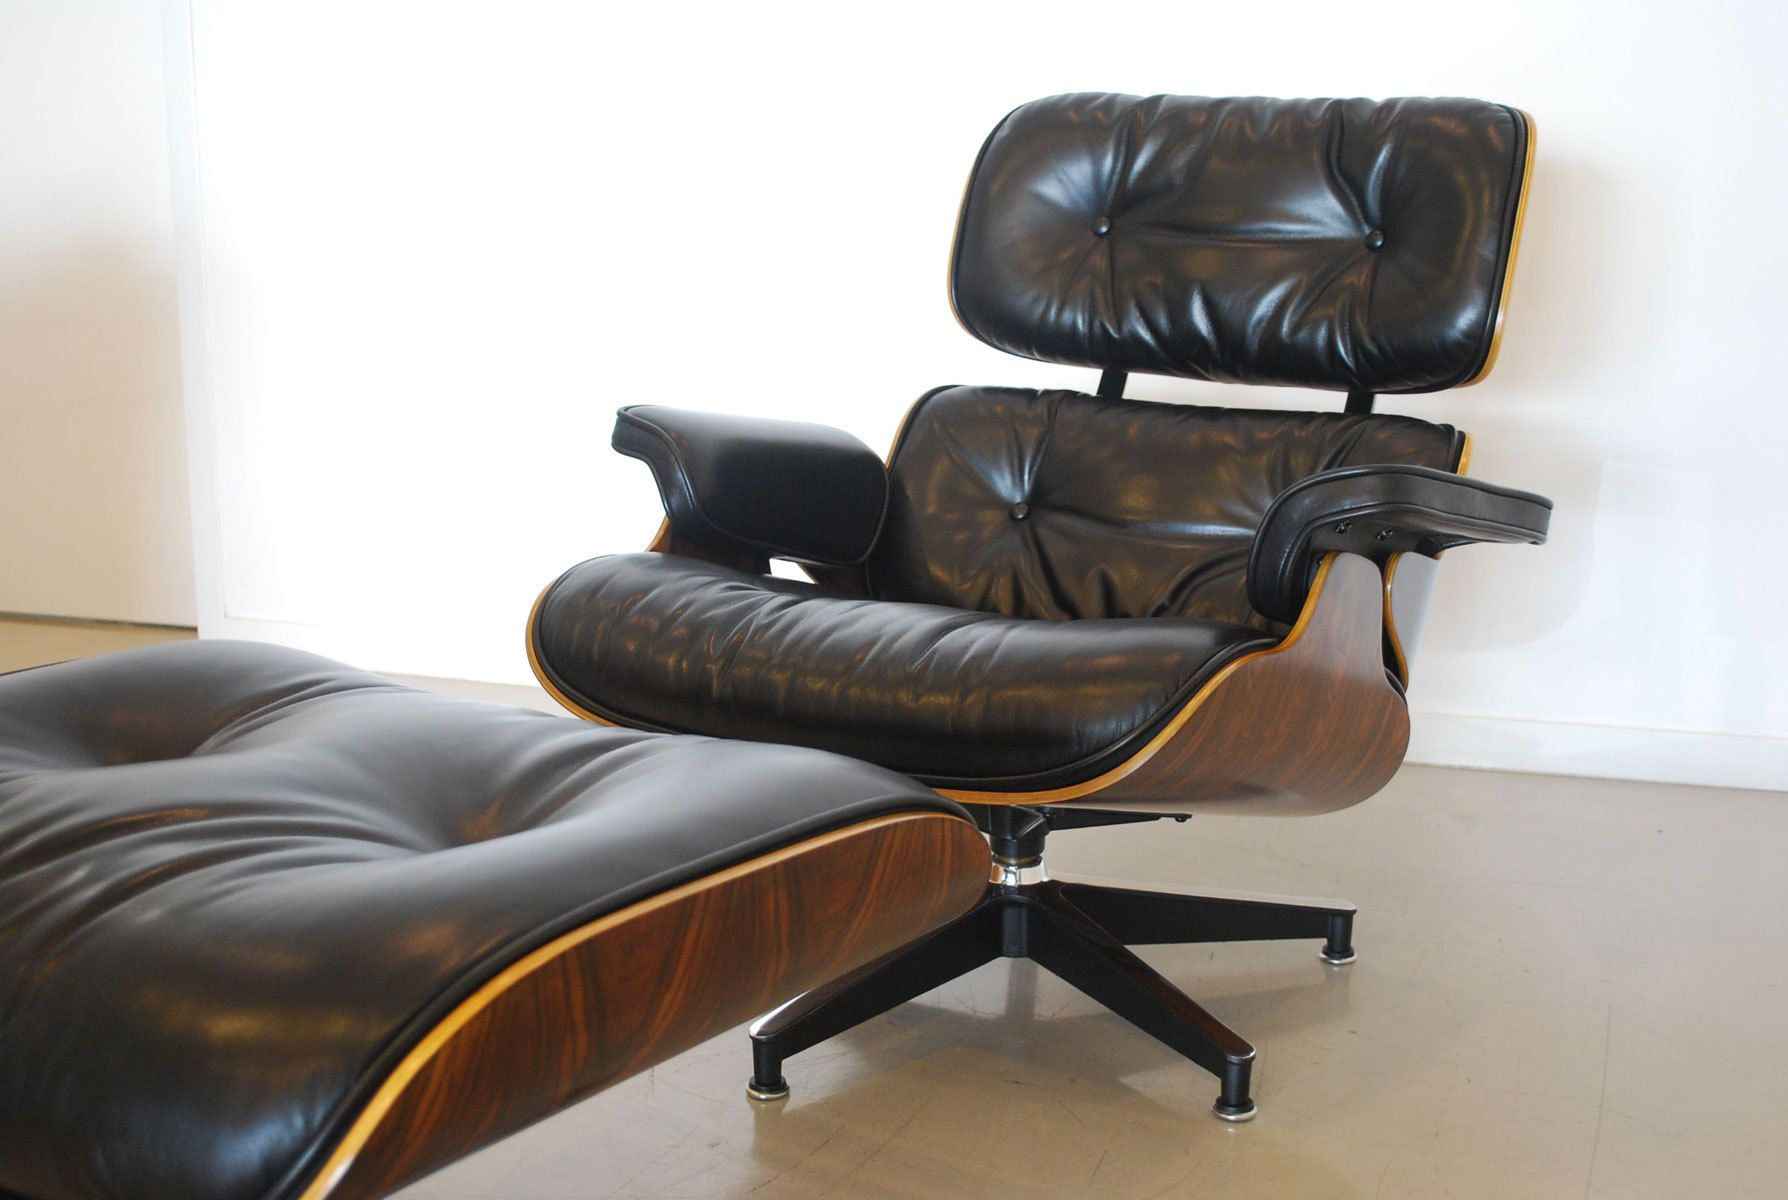 Herman Miller Chair Repair Pedro Friedeberg Hand Eames Lounge Restoration